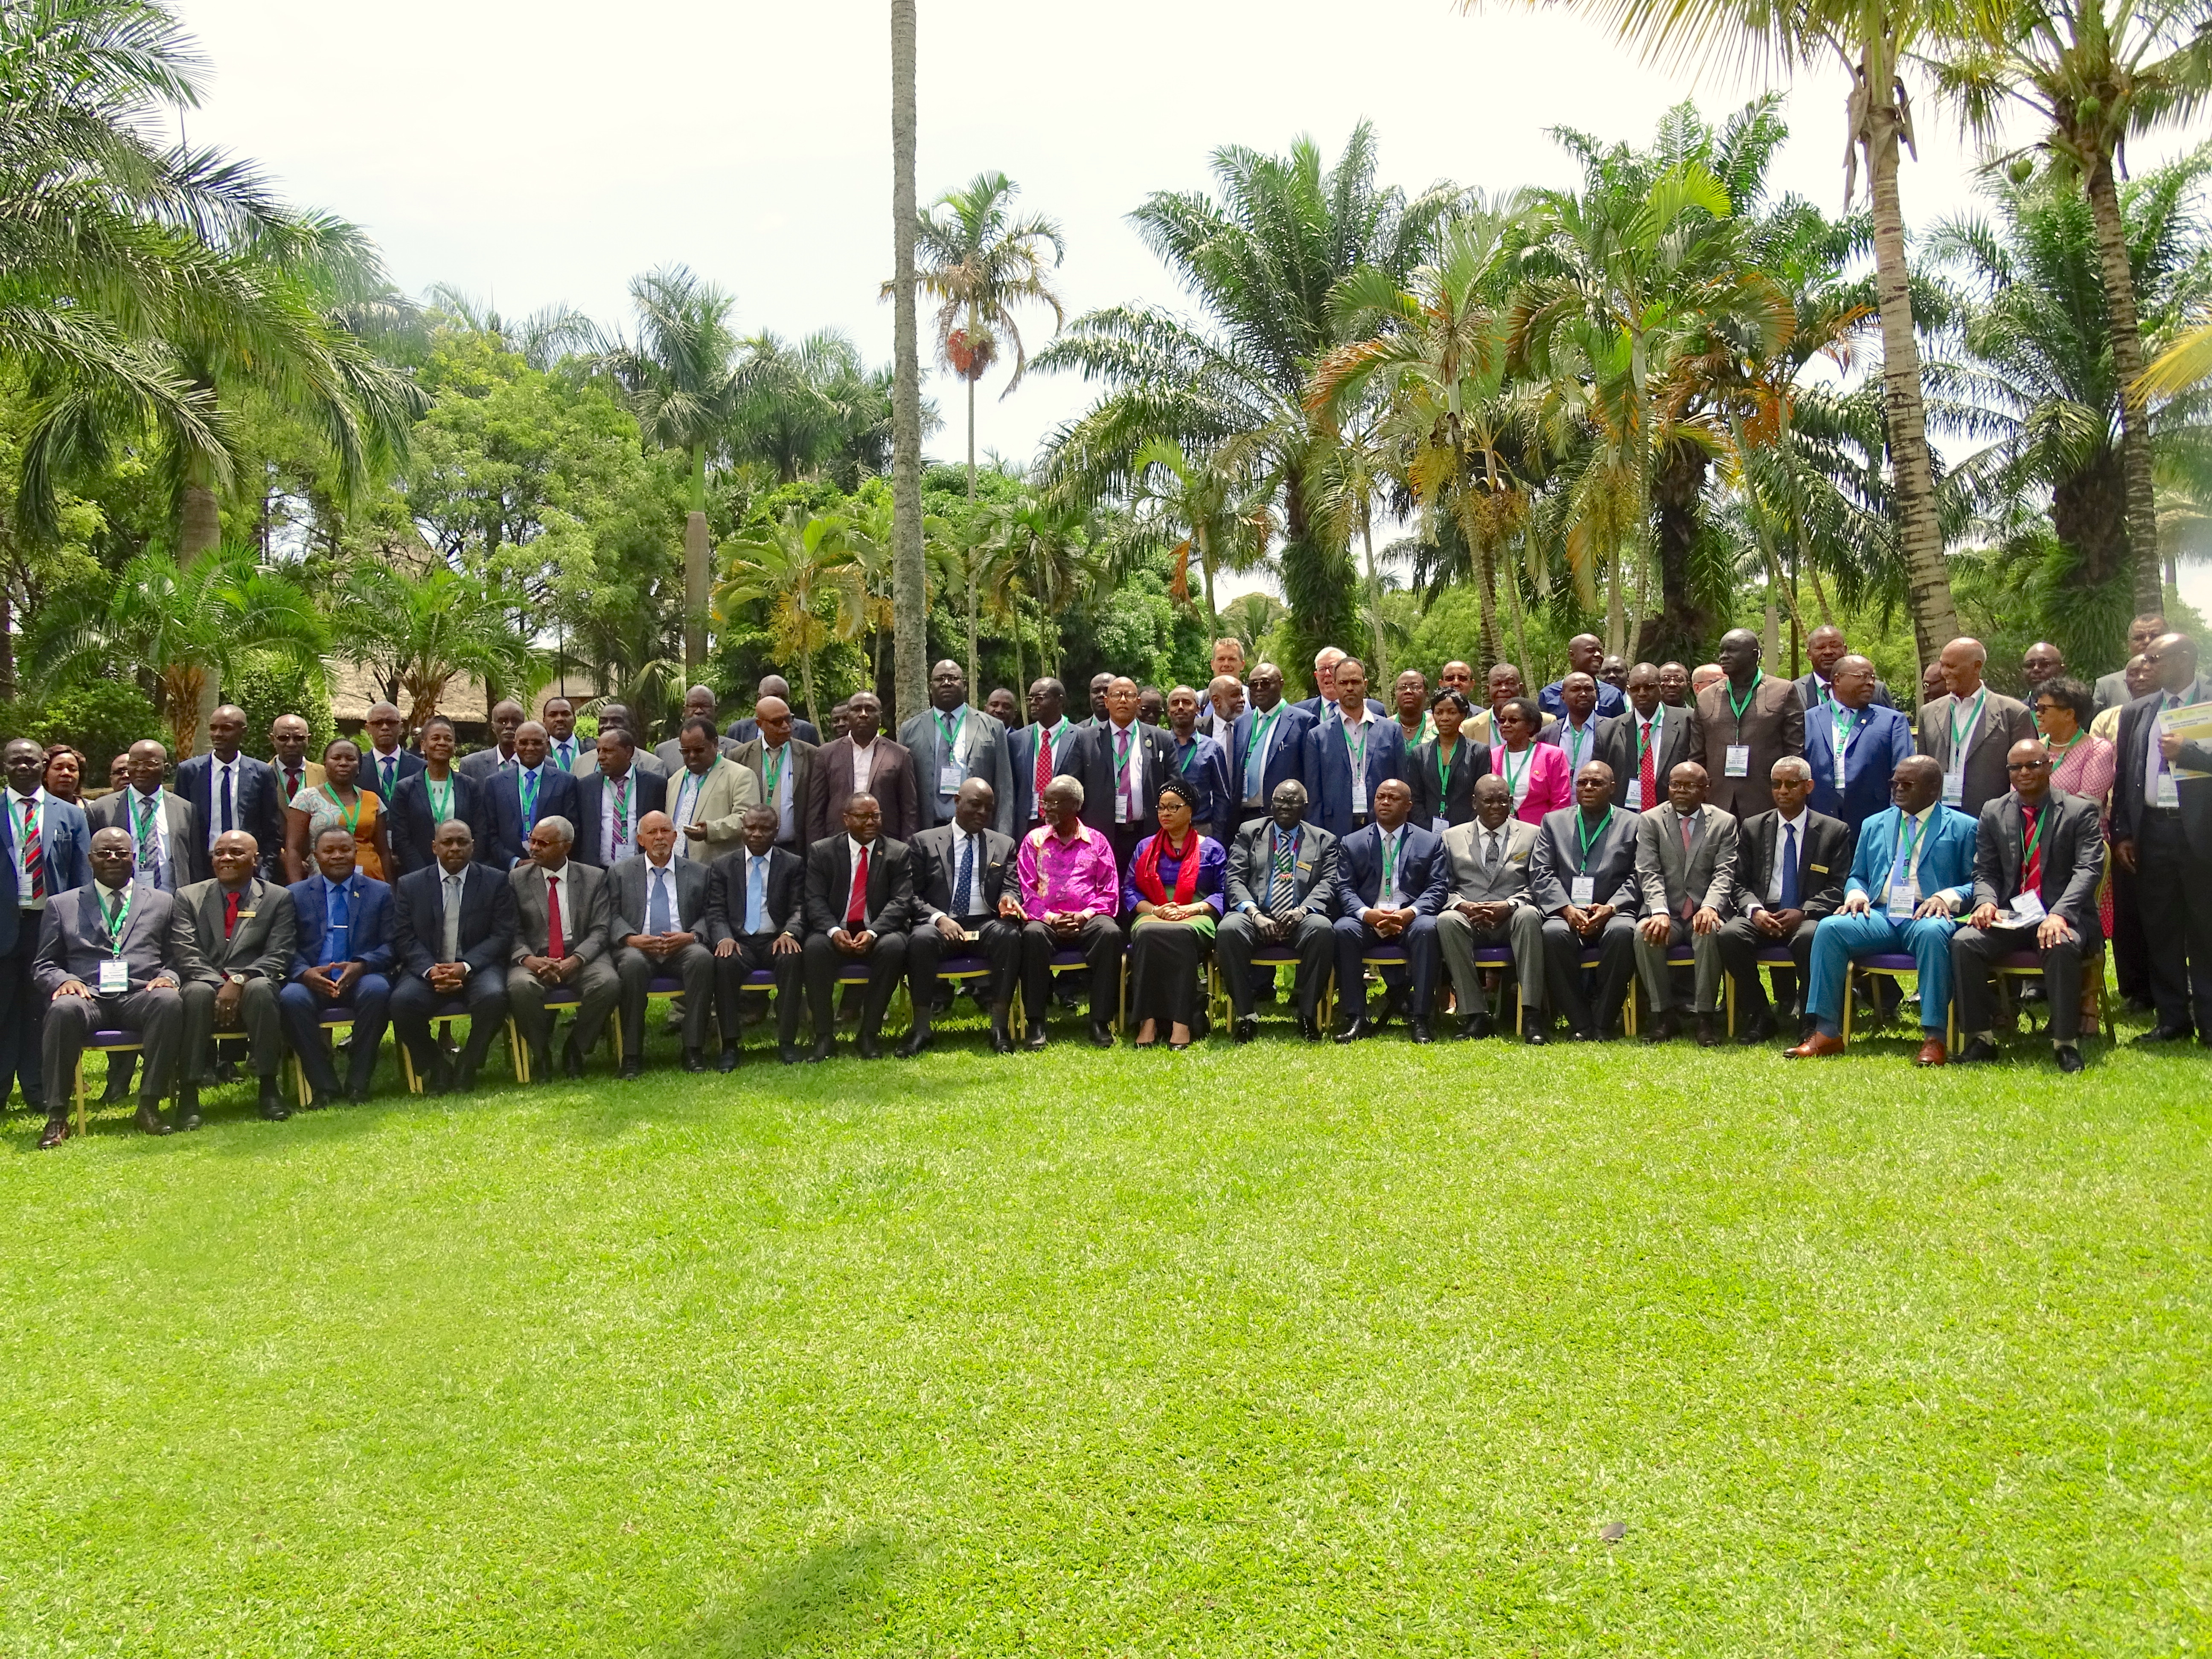 Delegates of the meeting organized by CIMMYT and ASARECA pose for a group photo. (Photo: Jerome Bossuet)